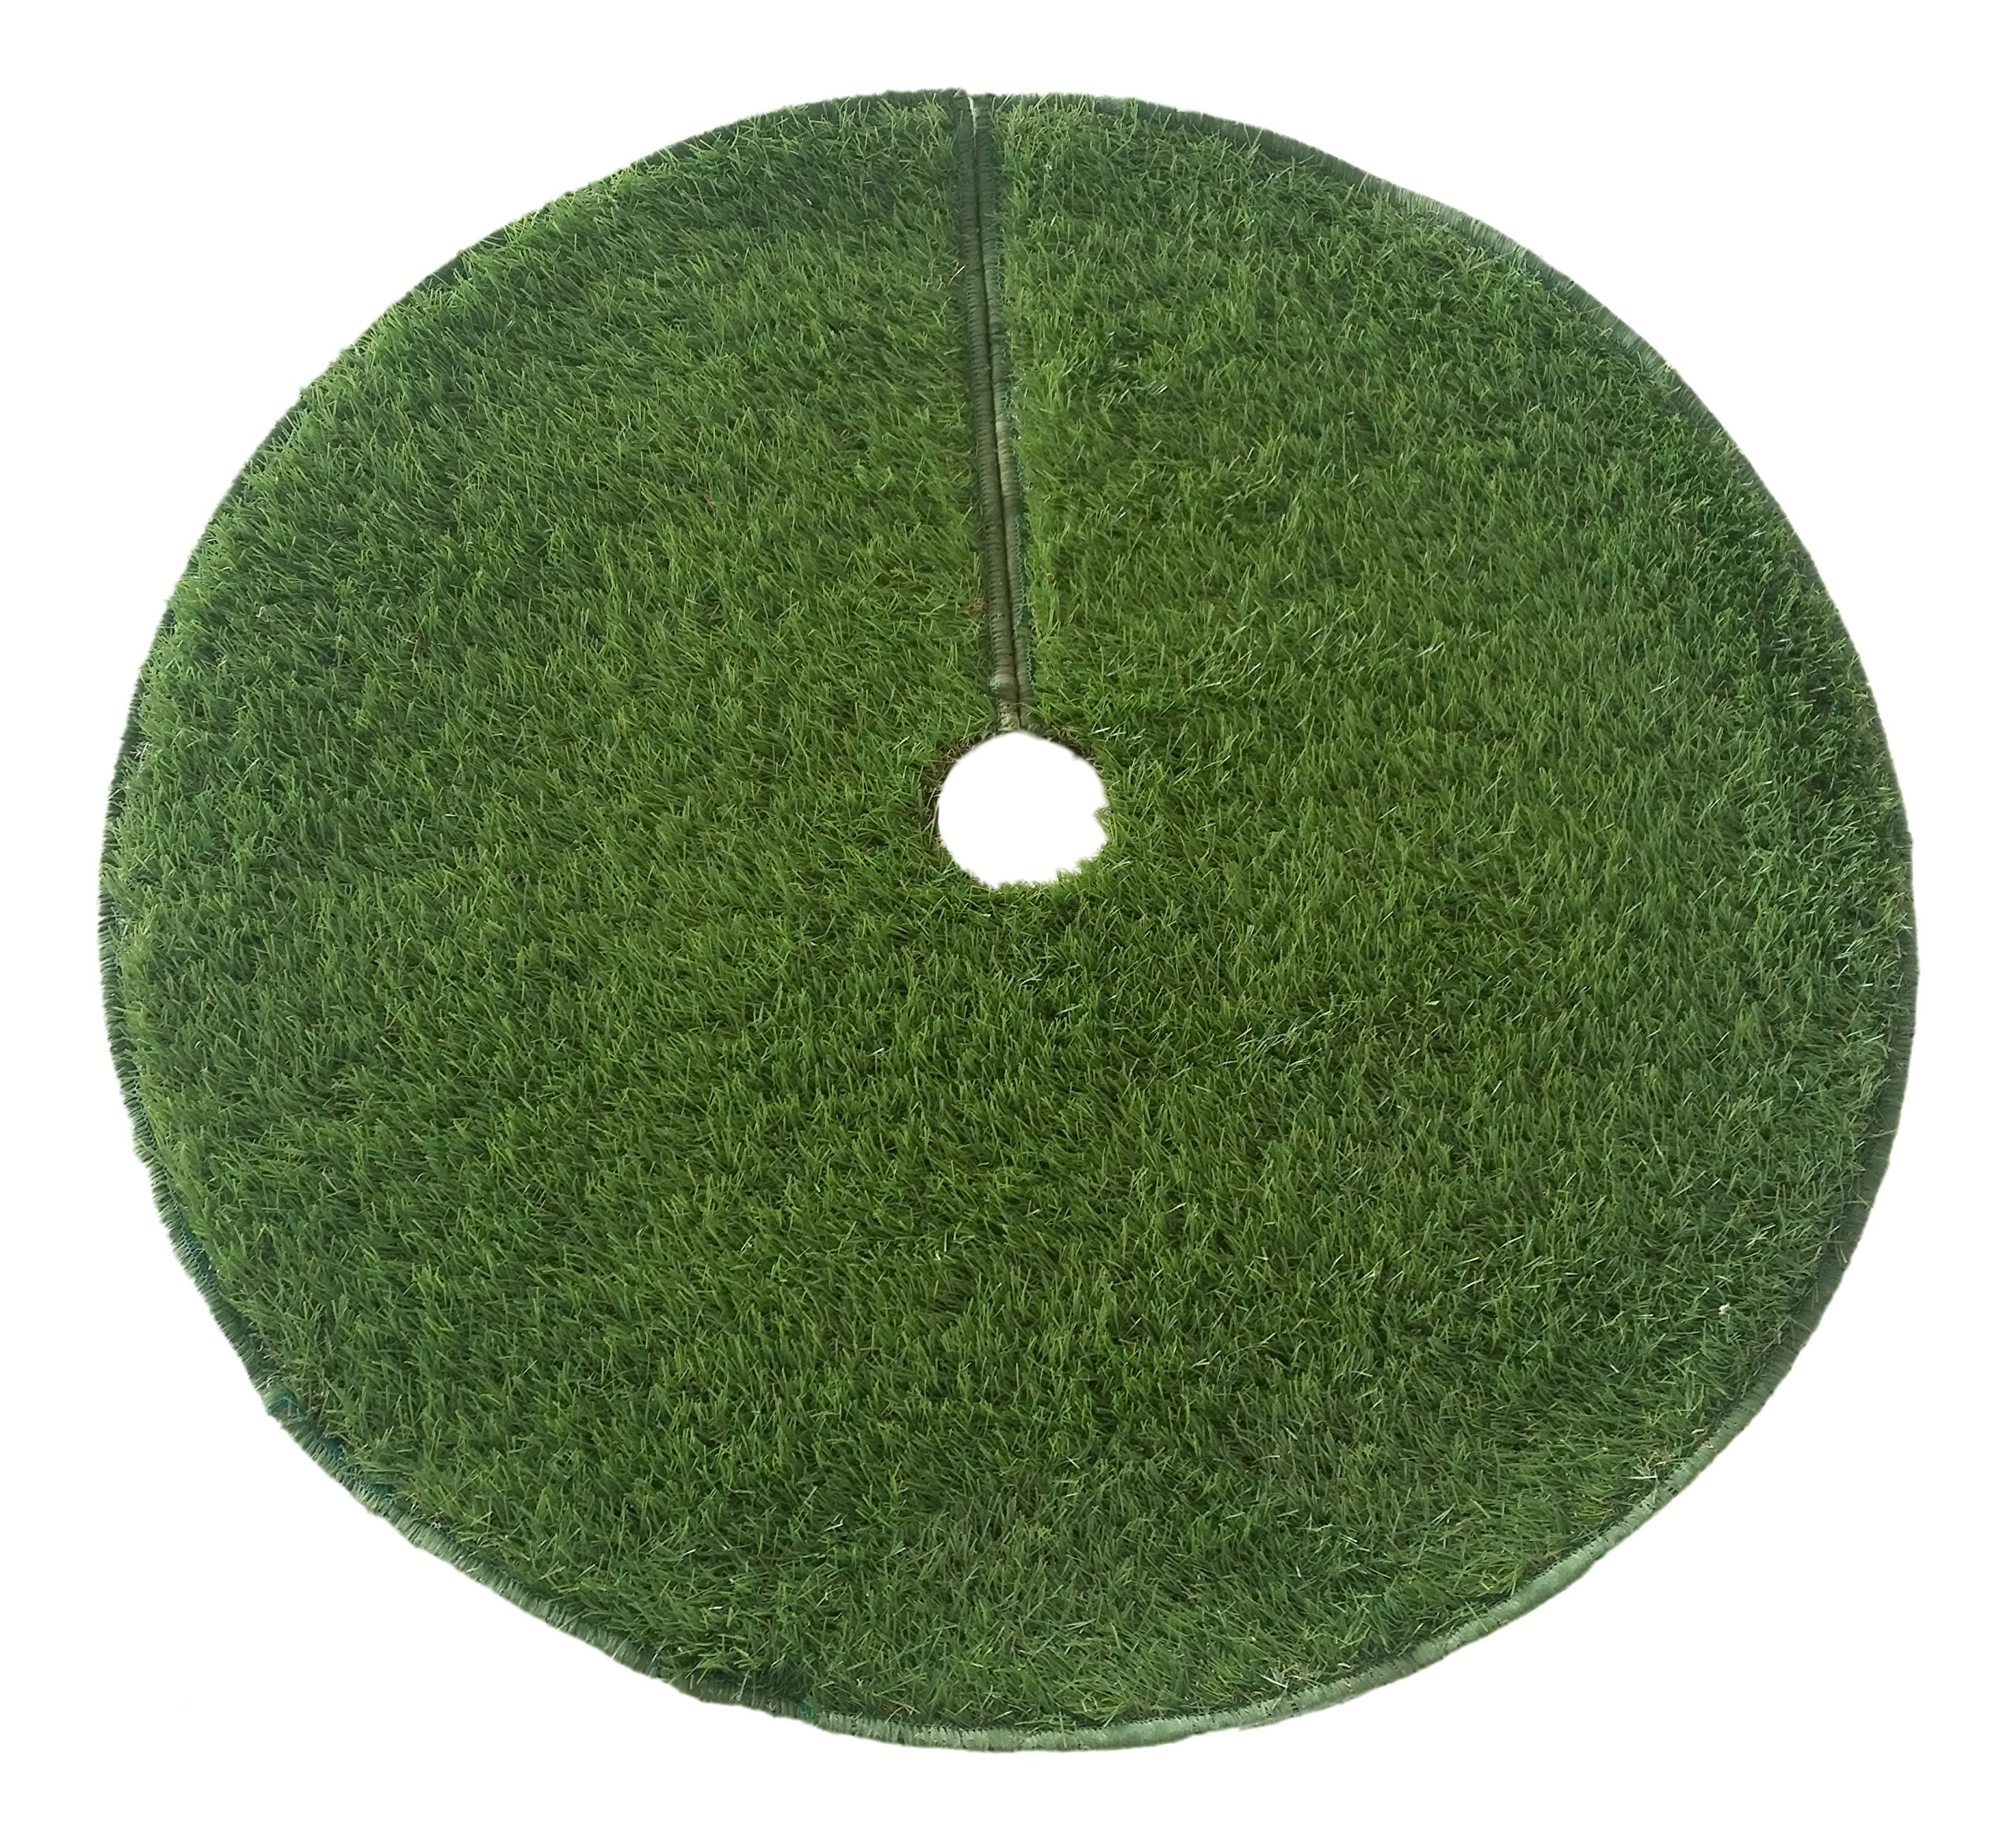 Zen Garden Artificial Grass Christmas Tree Skirt w/ Anti-Slip Rubber Base w/ Binding (48'' Dia) | Realistic Synthetic Grass Rug | Indoor & Outdoor Xmas Tree Skirts | Unique Holiday Decorations (Green)